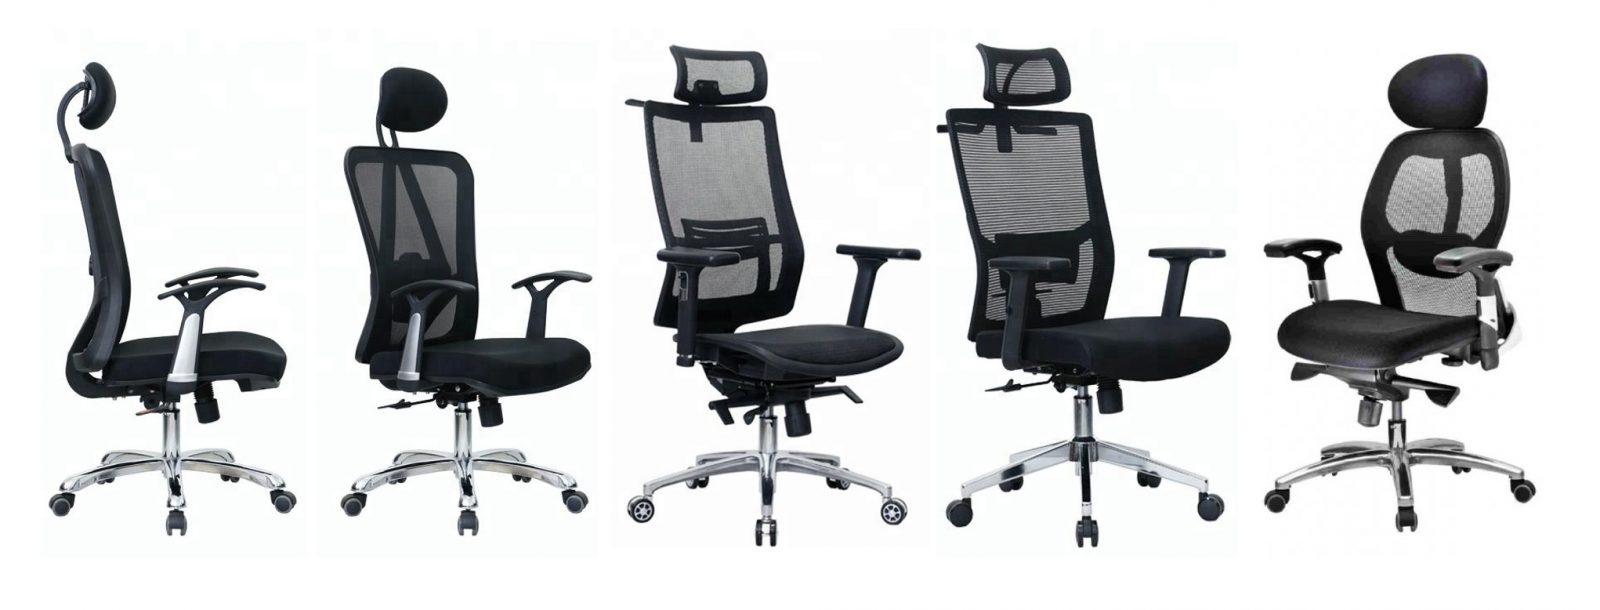 Best Ergonomic Office Chair Choosing An Ergonomic Office Chair For Your Employees